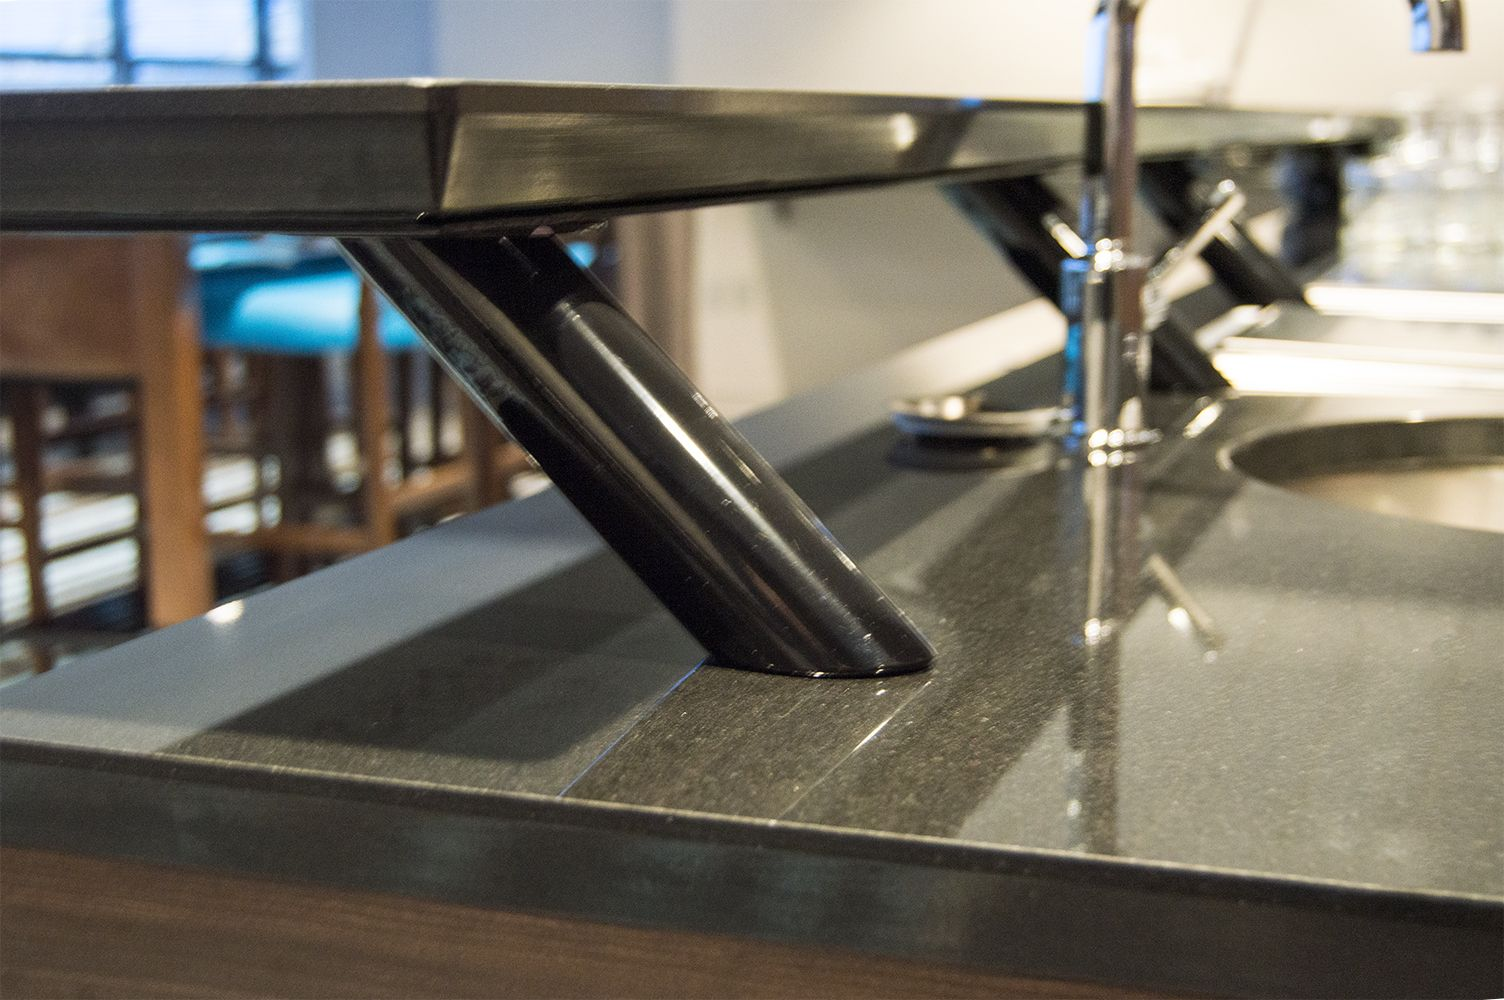 The Blakeney Countertop Post Support For Elevated Countertops Is